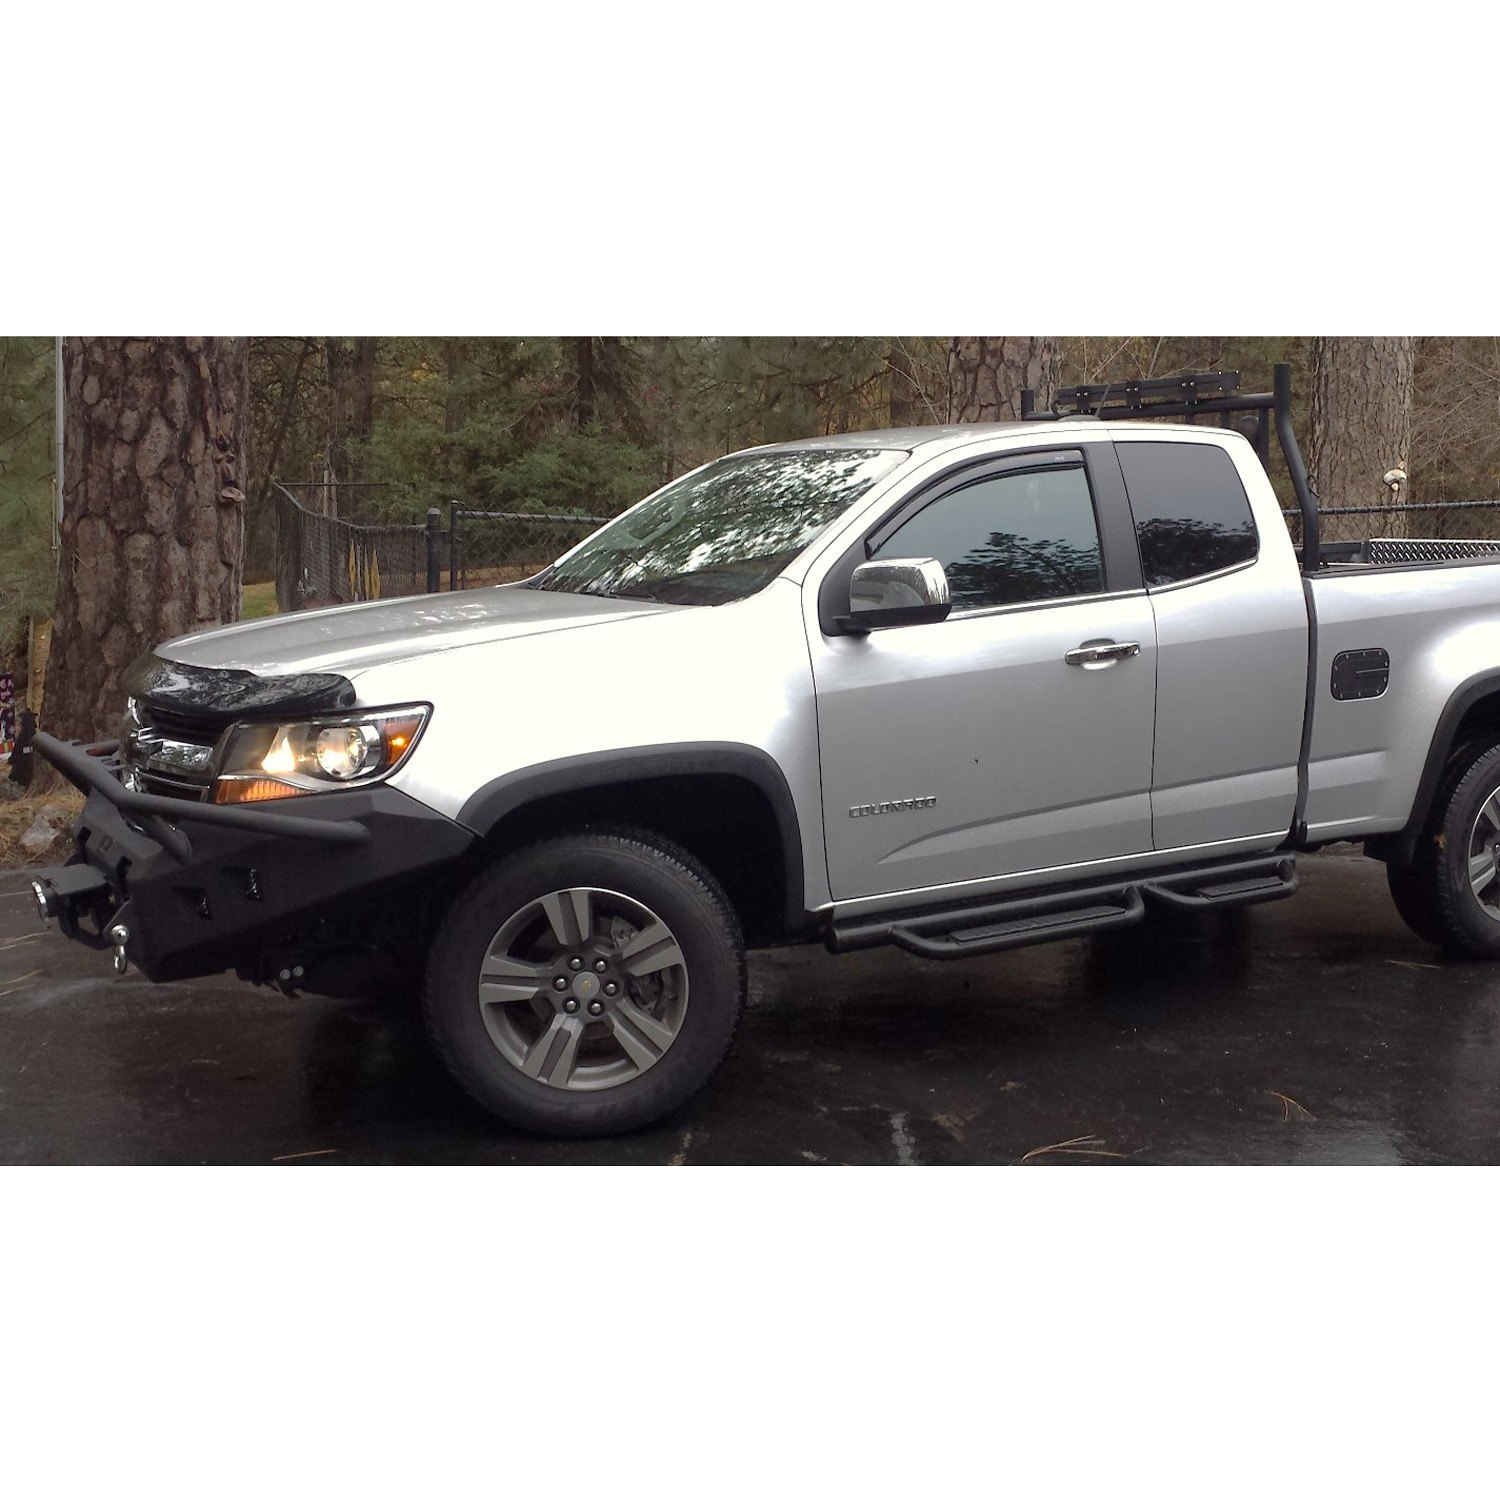 hammerhead chevy colorado 2016 full width black front winch hd bumper with pre runner guard. Black Bedroom Furniture Sets. Home Design Ideas